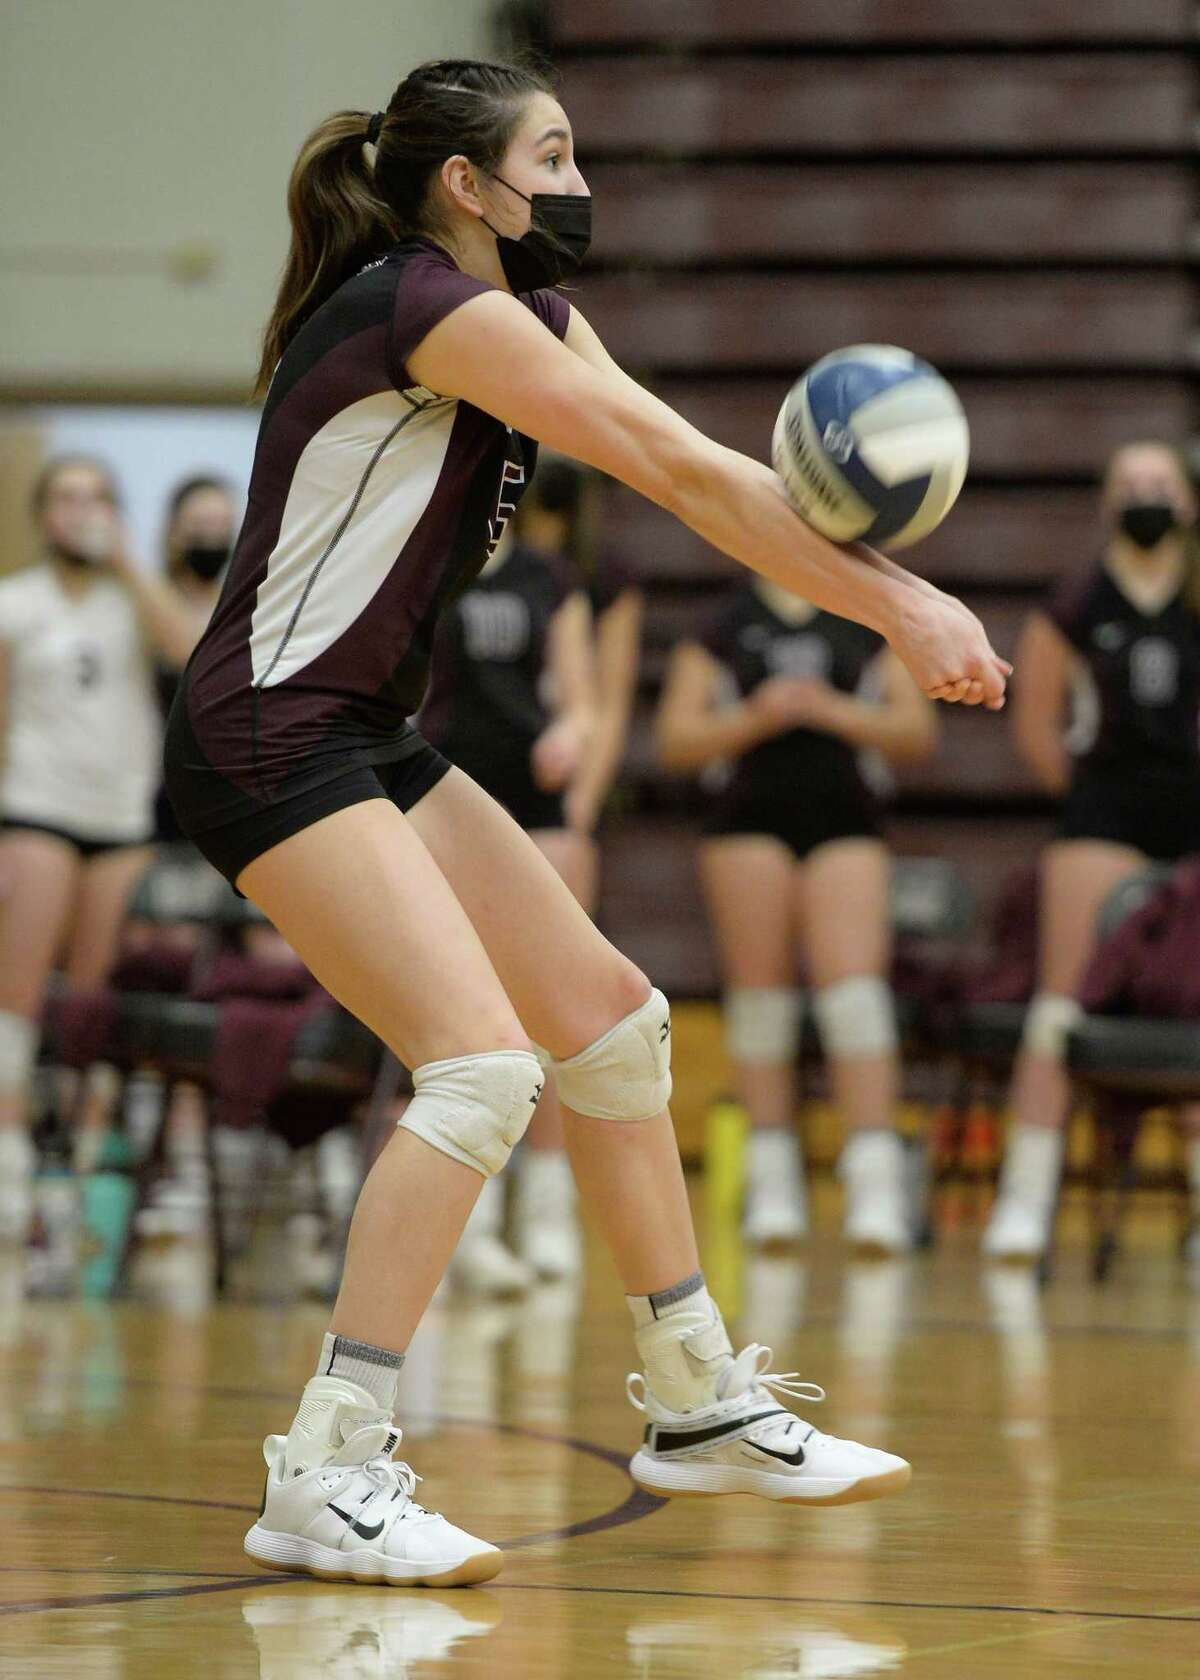 Burnt Hills?•s Callie Chevalier bumps the ball during a game against Saratoga on Tuesday, Mar. 30, 2021, in Burnt Hills, N.Y. (Jenn March, Special to the Times Union)